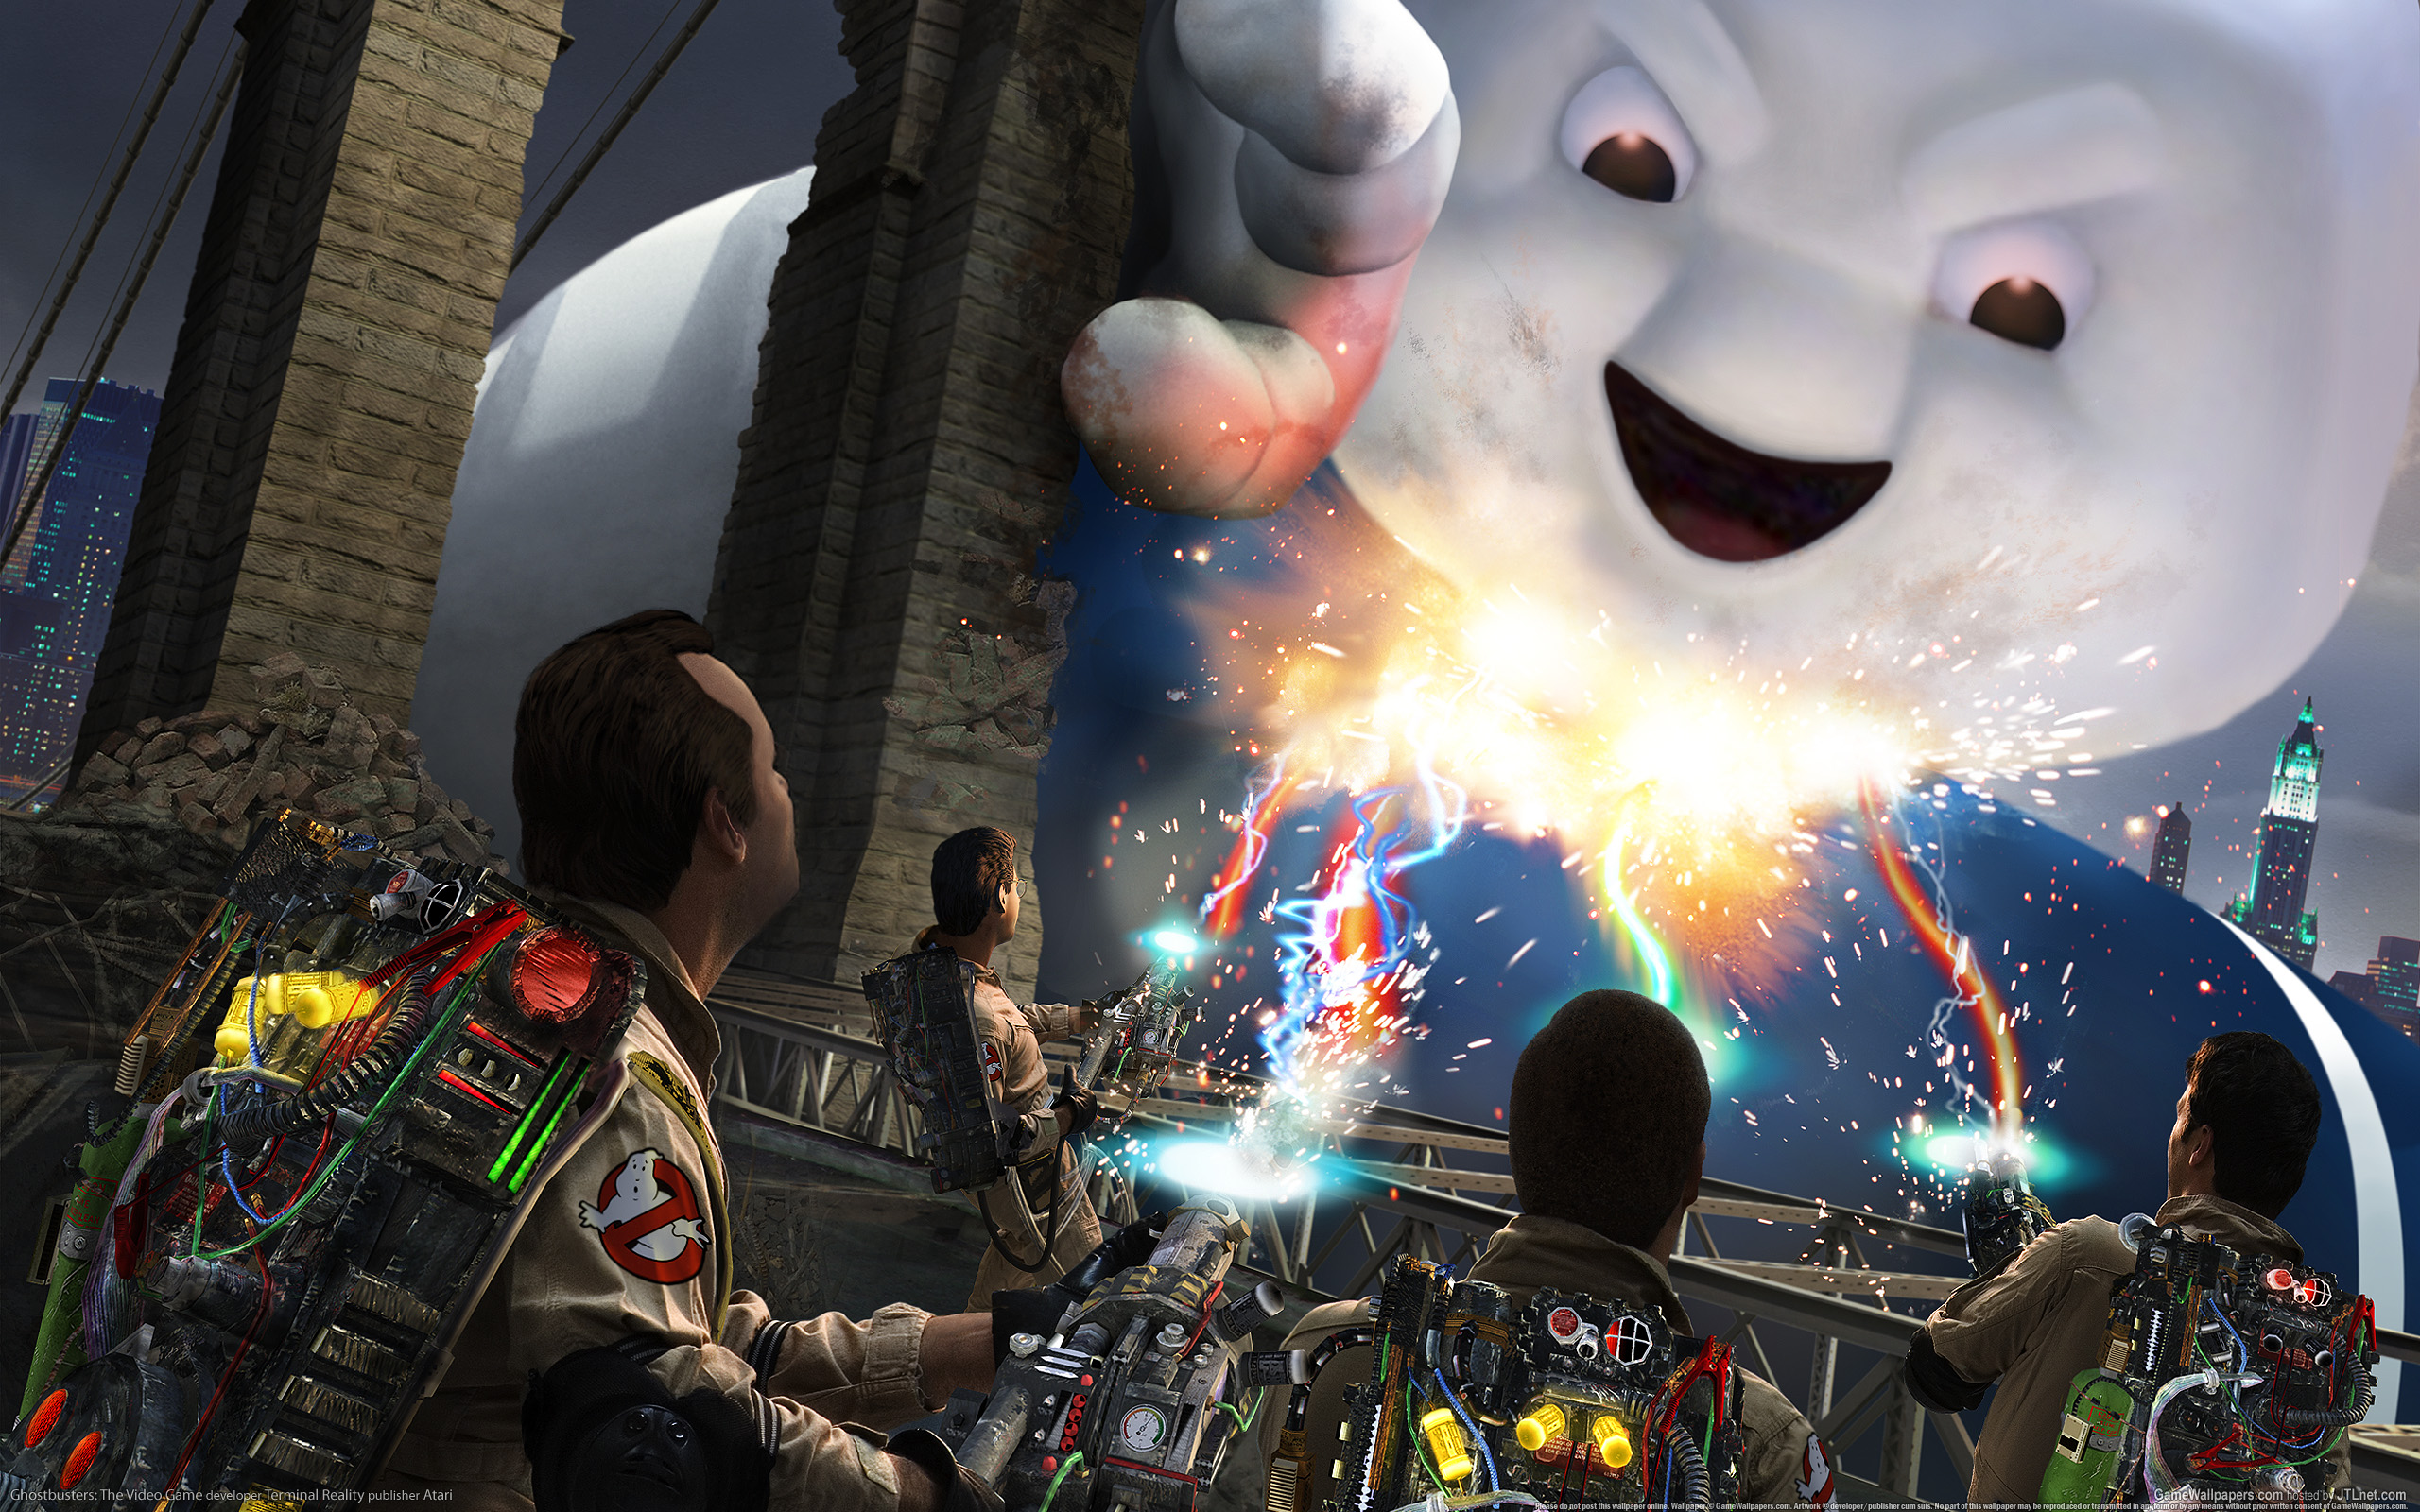 wallpaper_ghostbusters_the_video_game_01_2560x1600.jpg